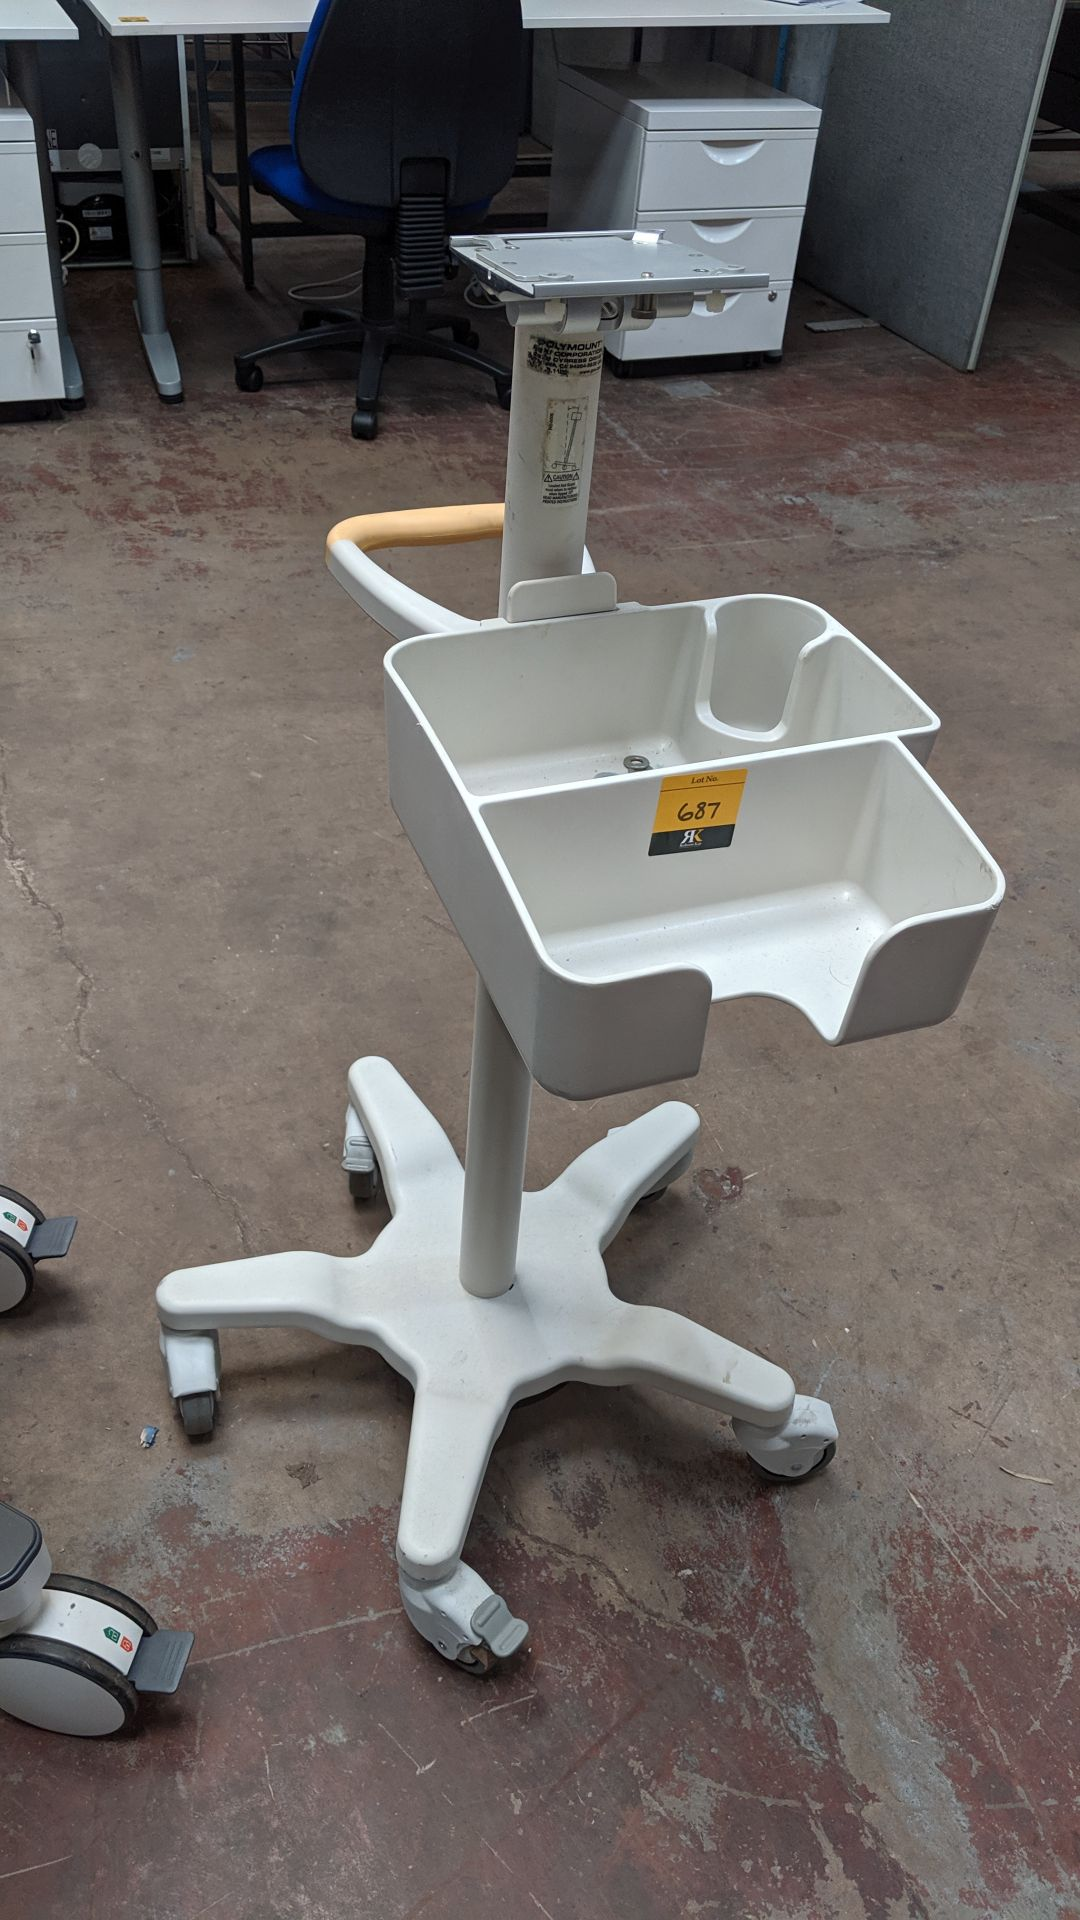 Lot 687 - Philips medical systems mobile cart. This is one of a large number of lots used/owned by One To